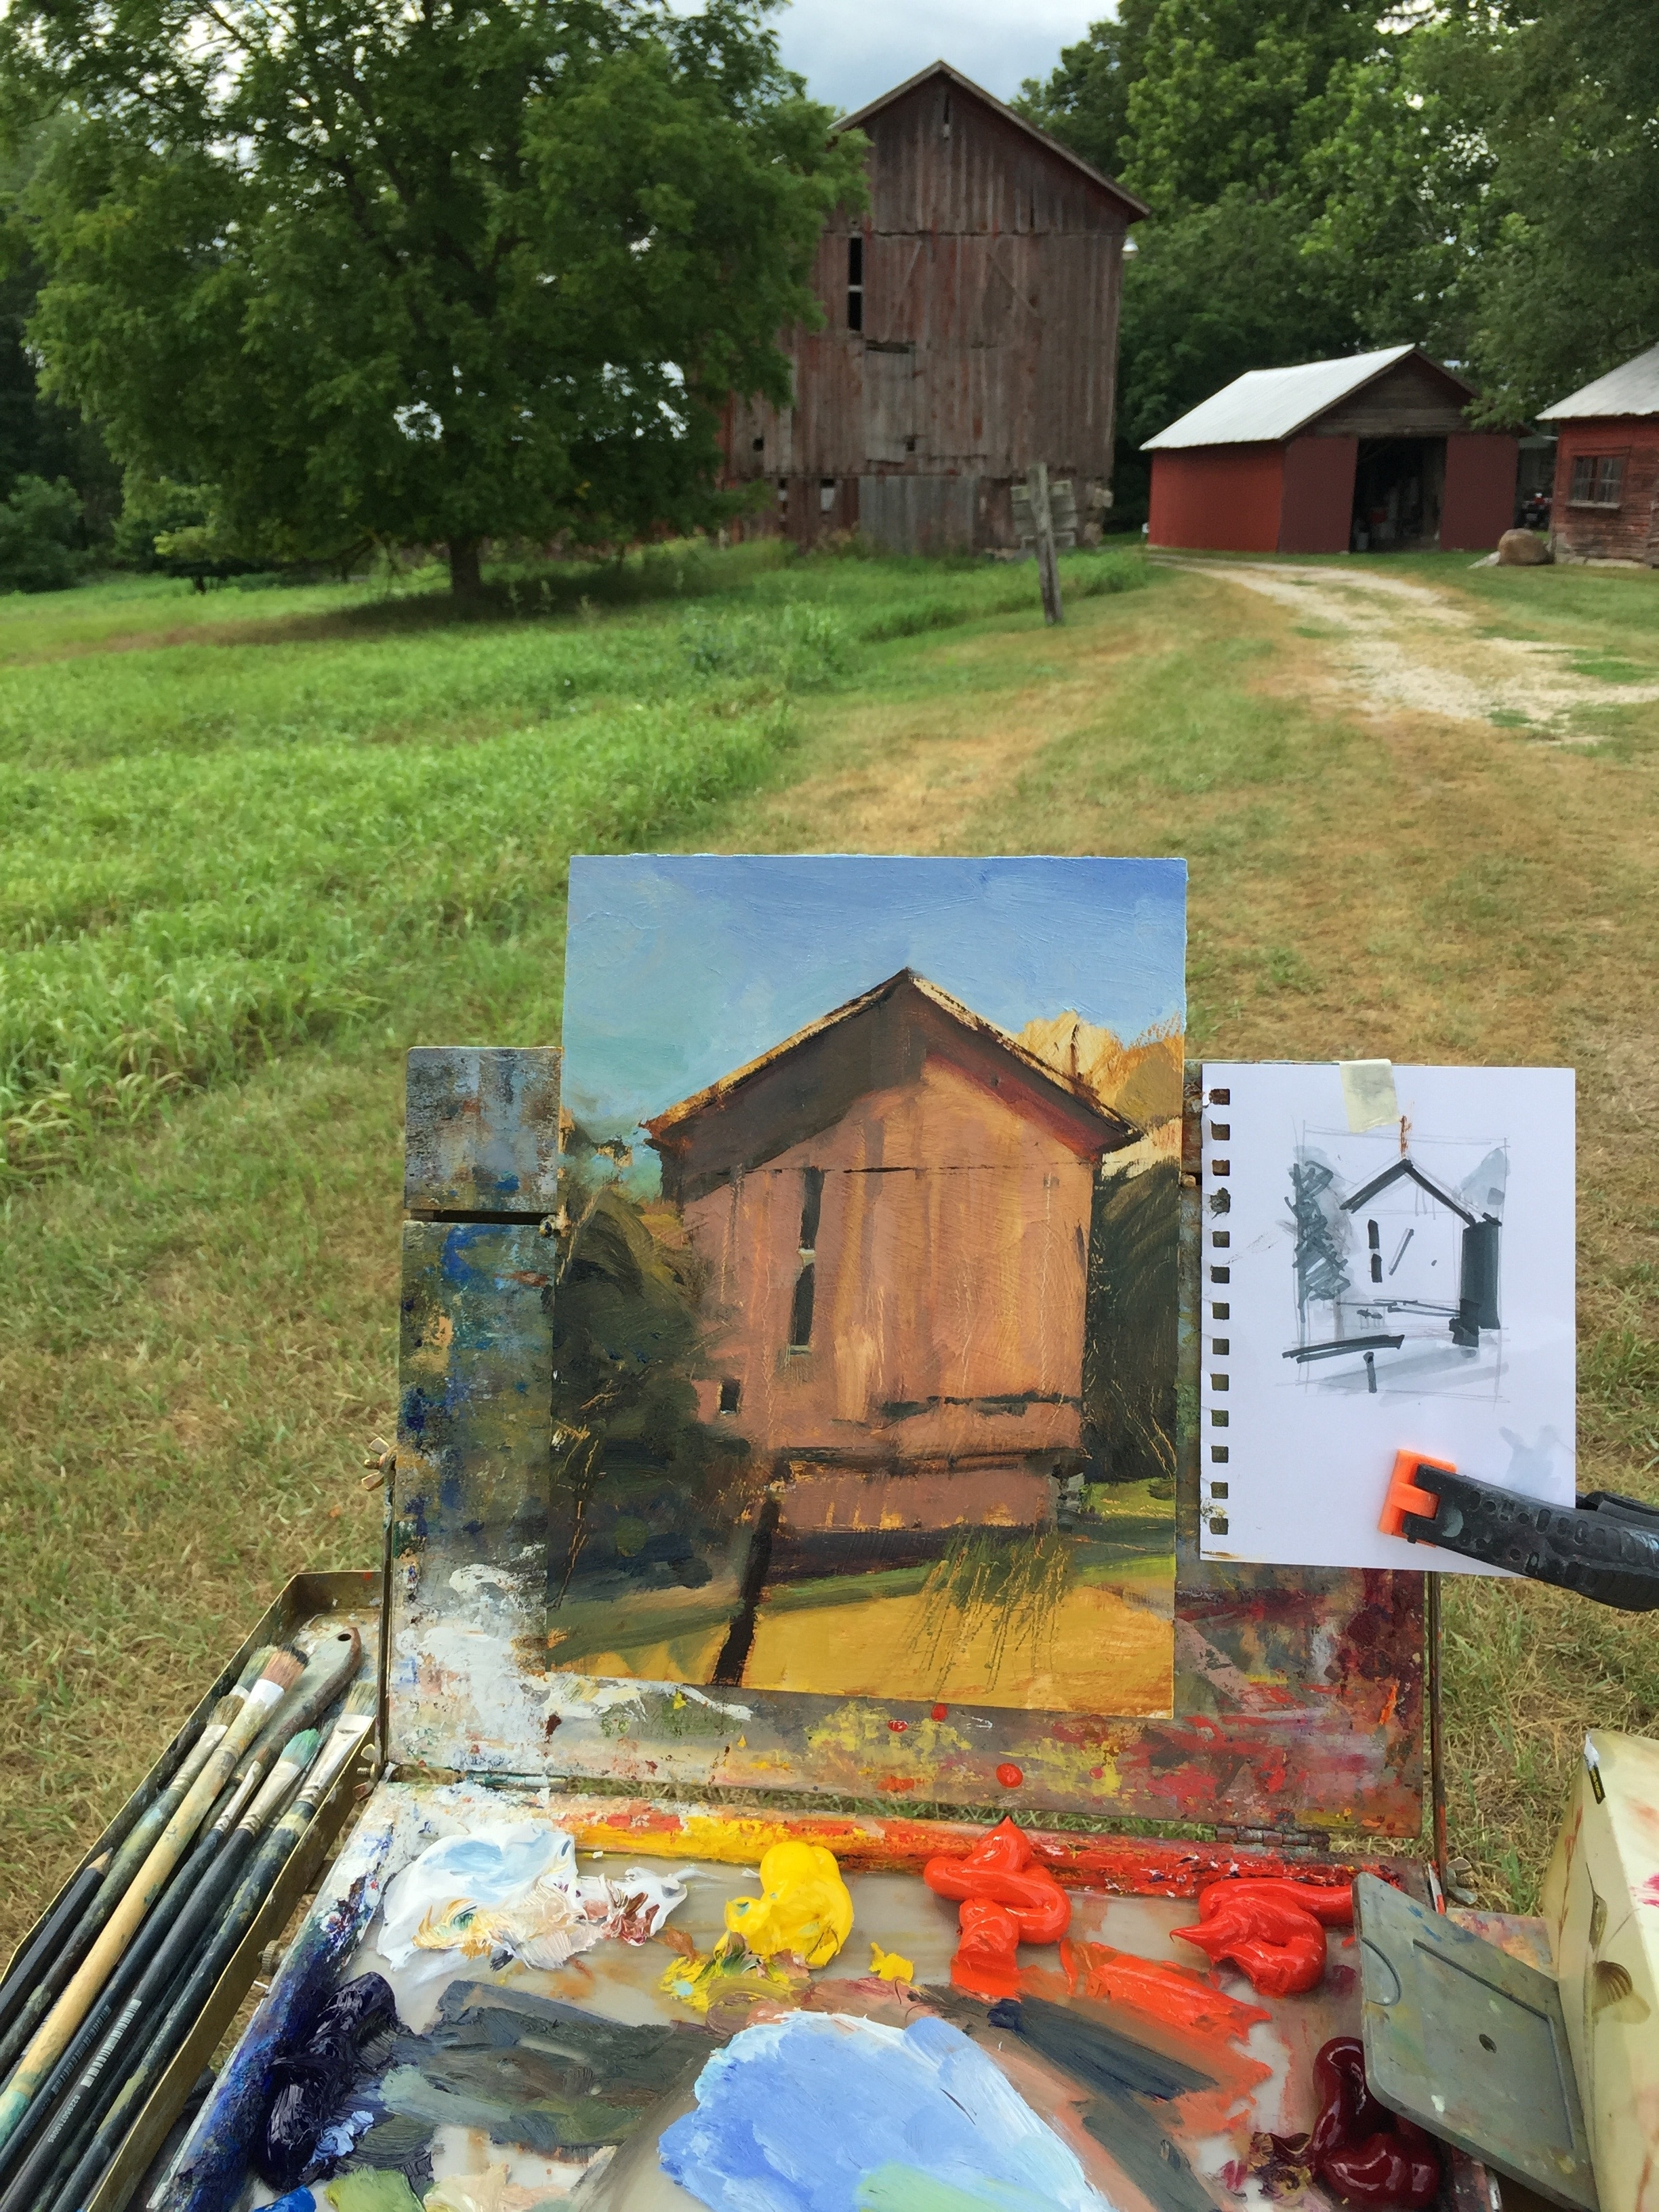 Painting a demo at a nearby 200 year old farm rich in visual and historical appeal!